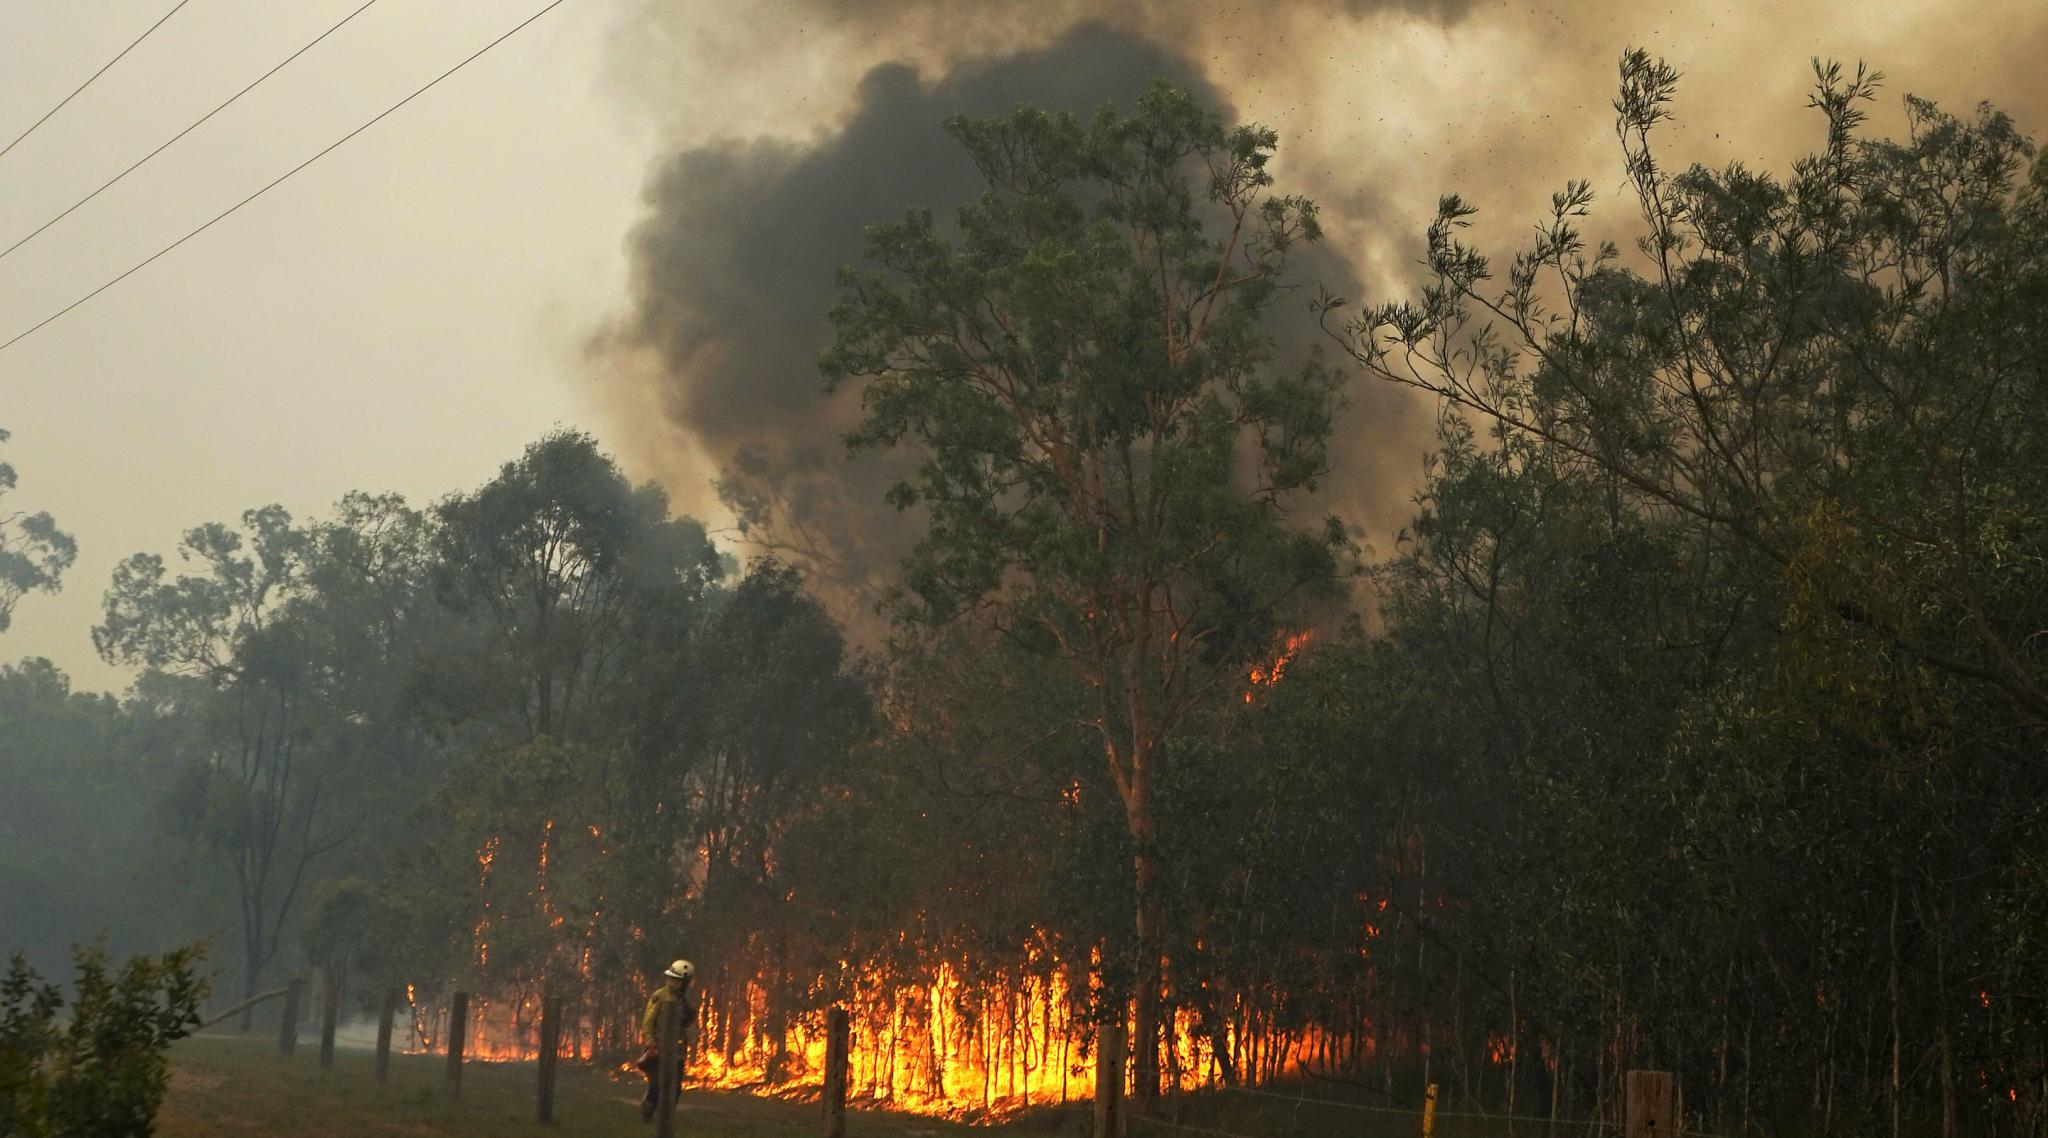 Australia Bushfires: Wollemi Pines Known As 'Dinosaur Trees' Saved From Wildfires in Secret Government Mission